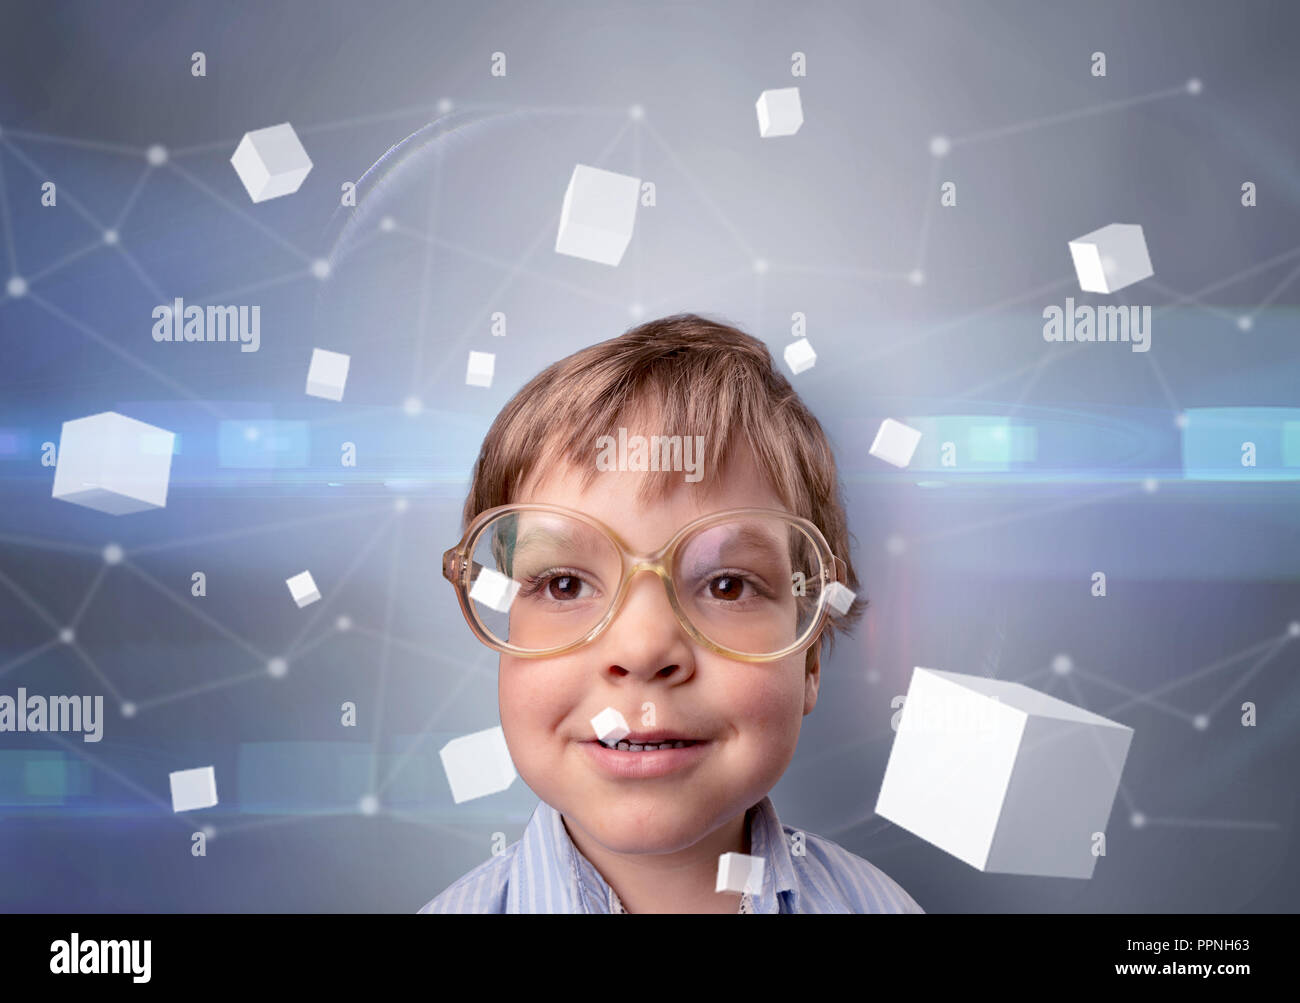 Little boy with luminous cubes around and 3D concept - Stock Image